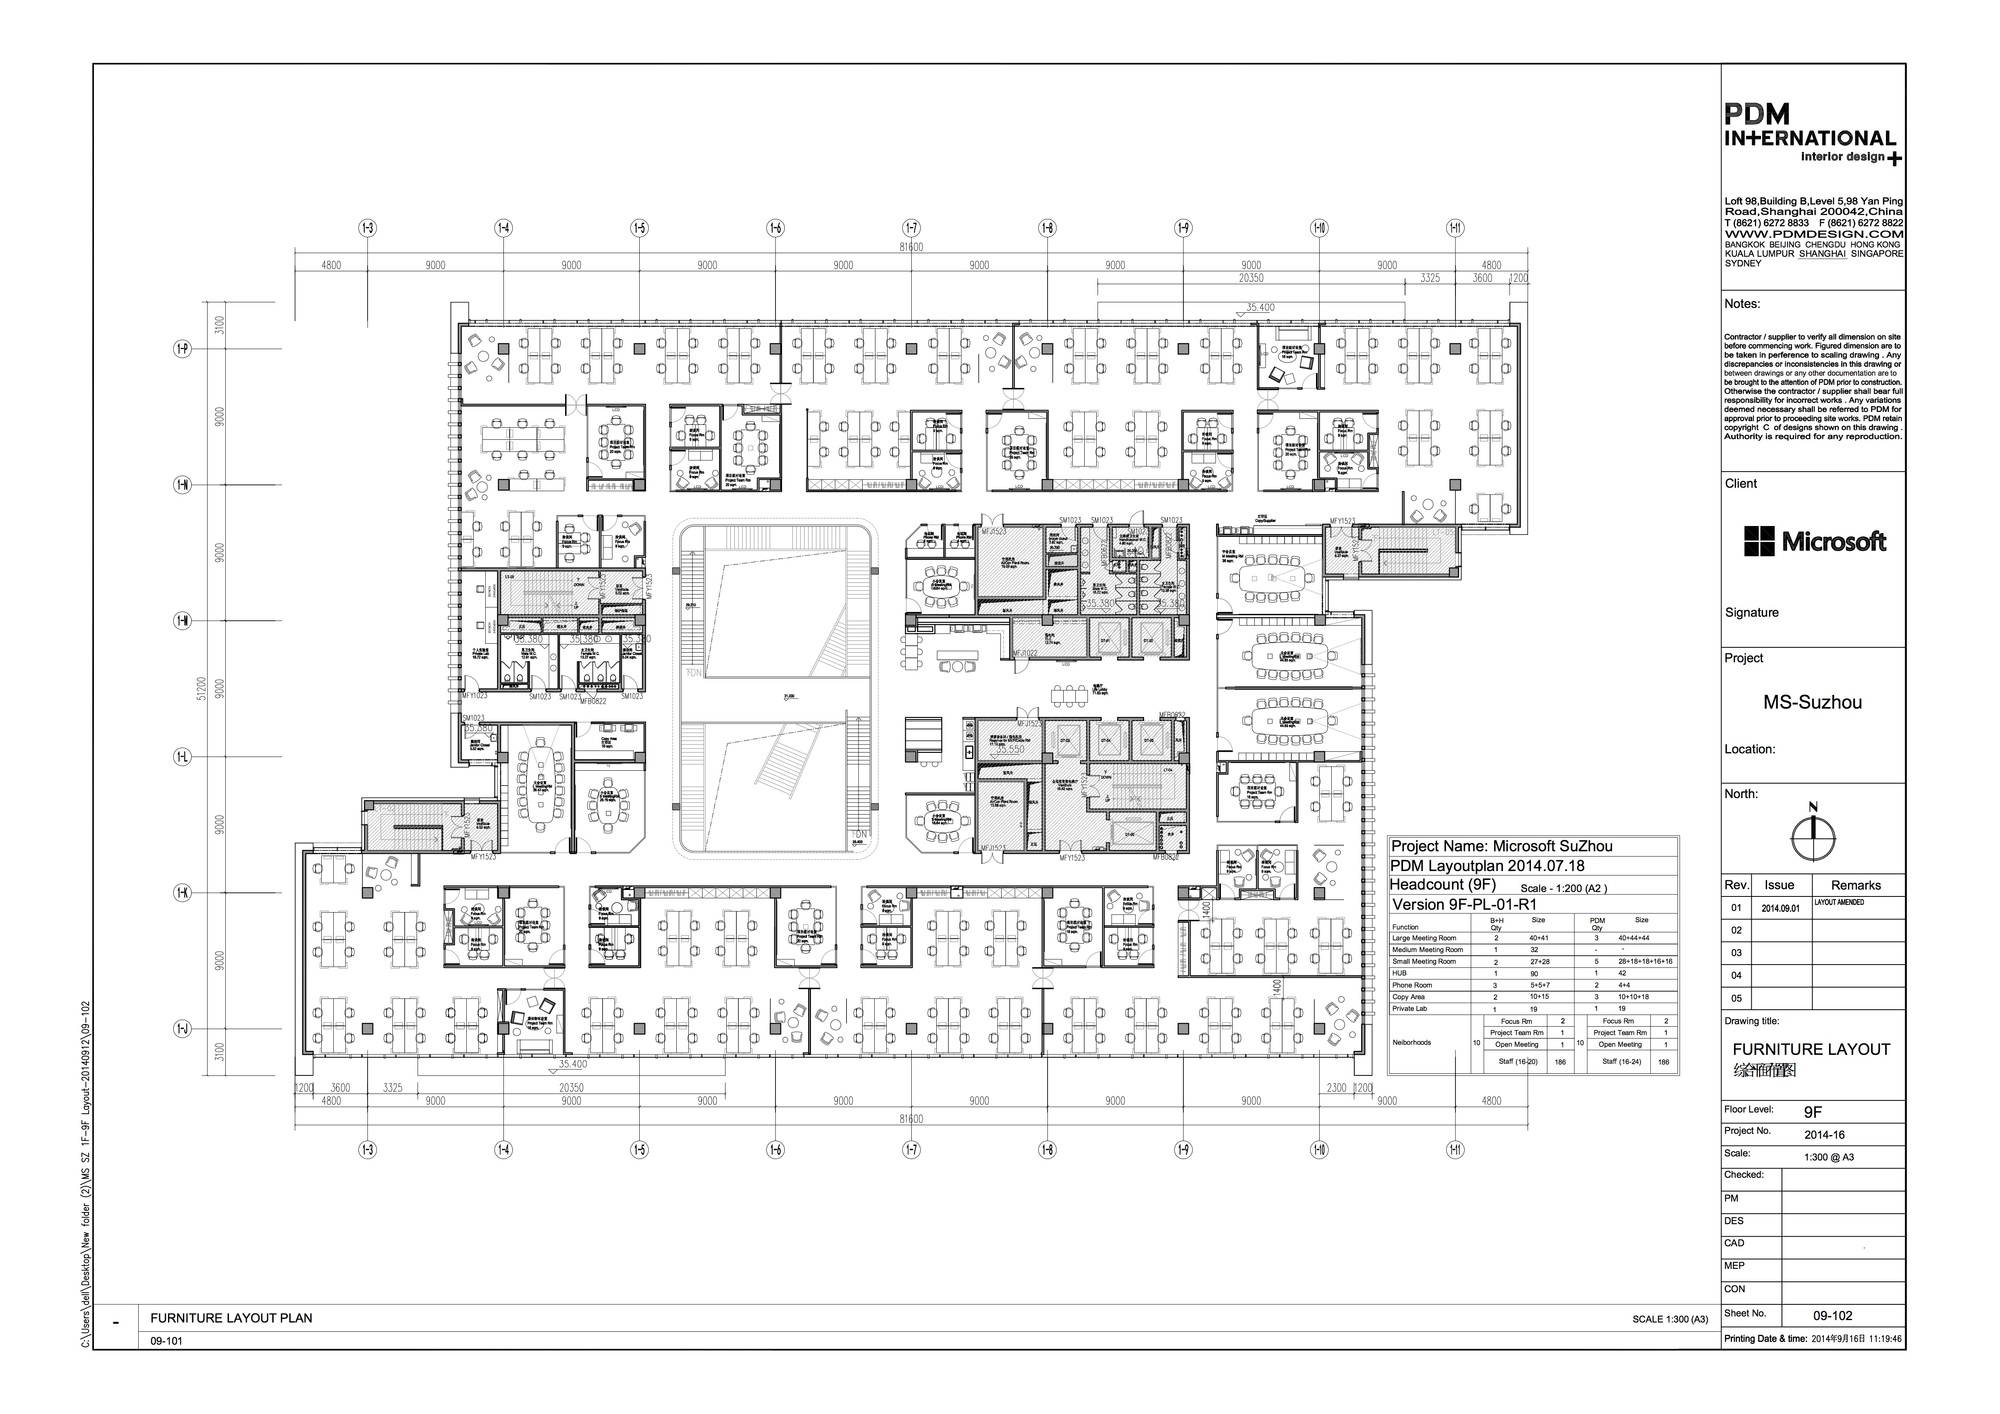 Cafe Floor Plan Gallery Of Microsoft Suzhou Technology Center Pdm